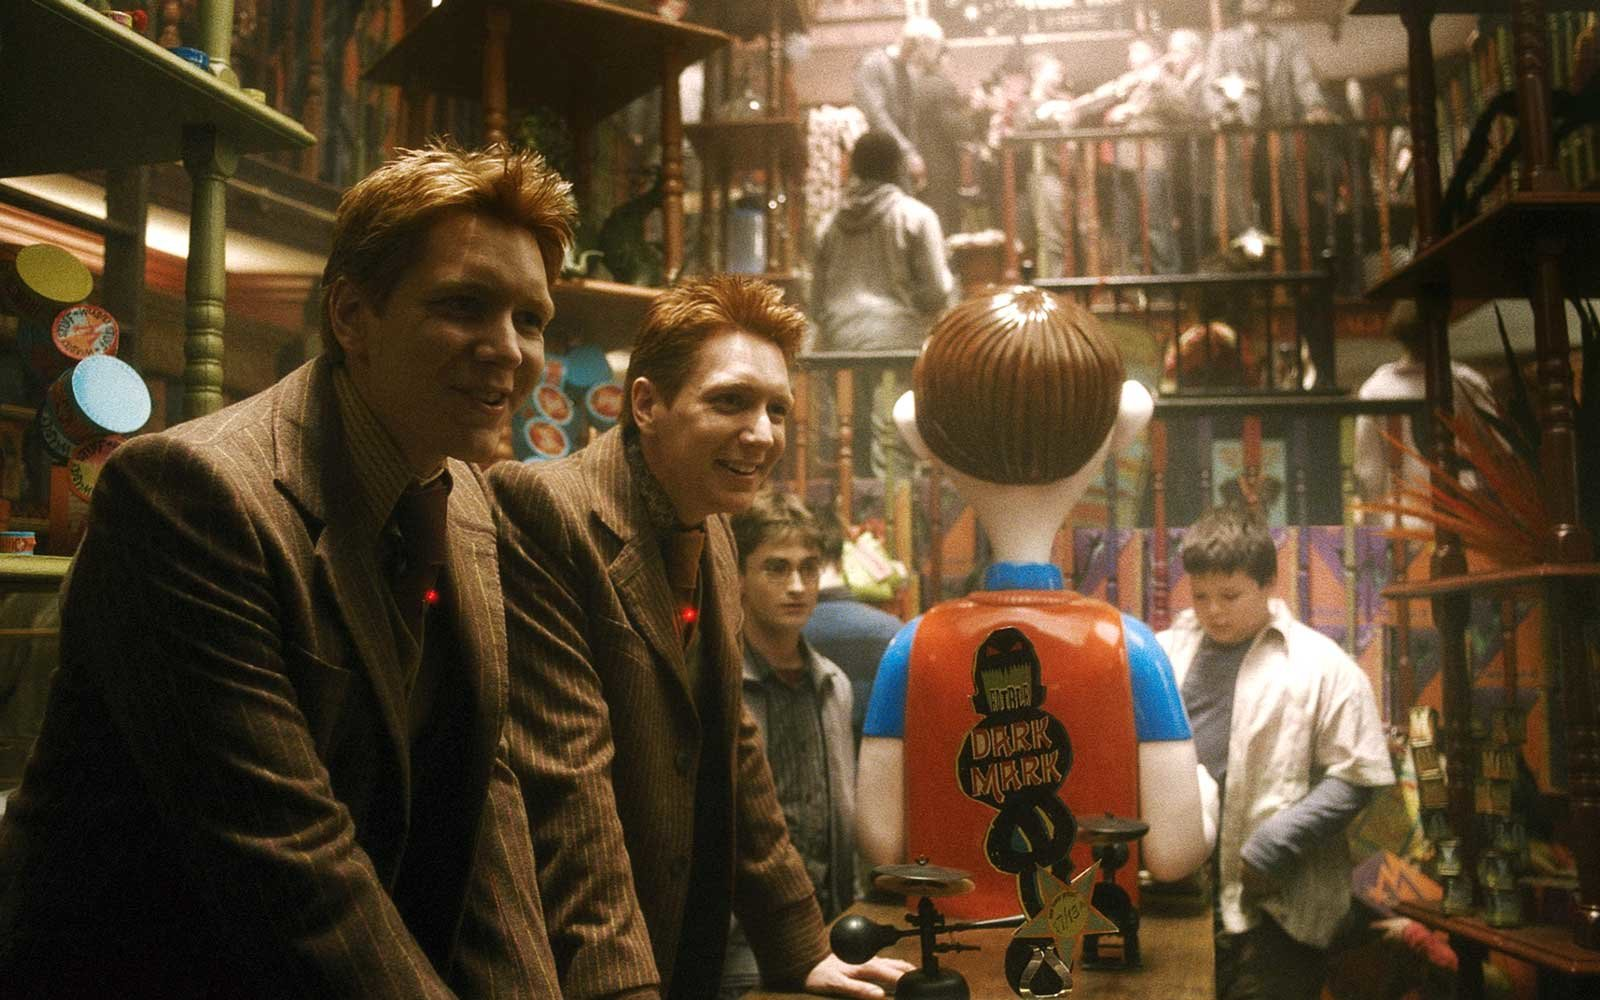 A film still from the movie, Harry Potter and The Half Blood Prince